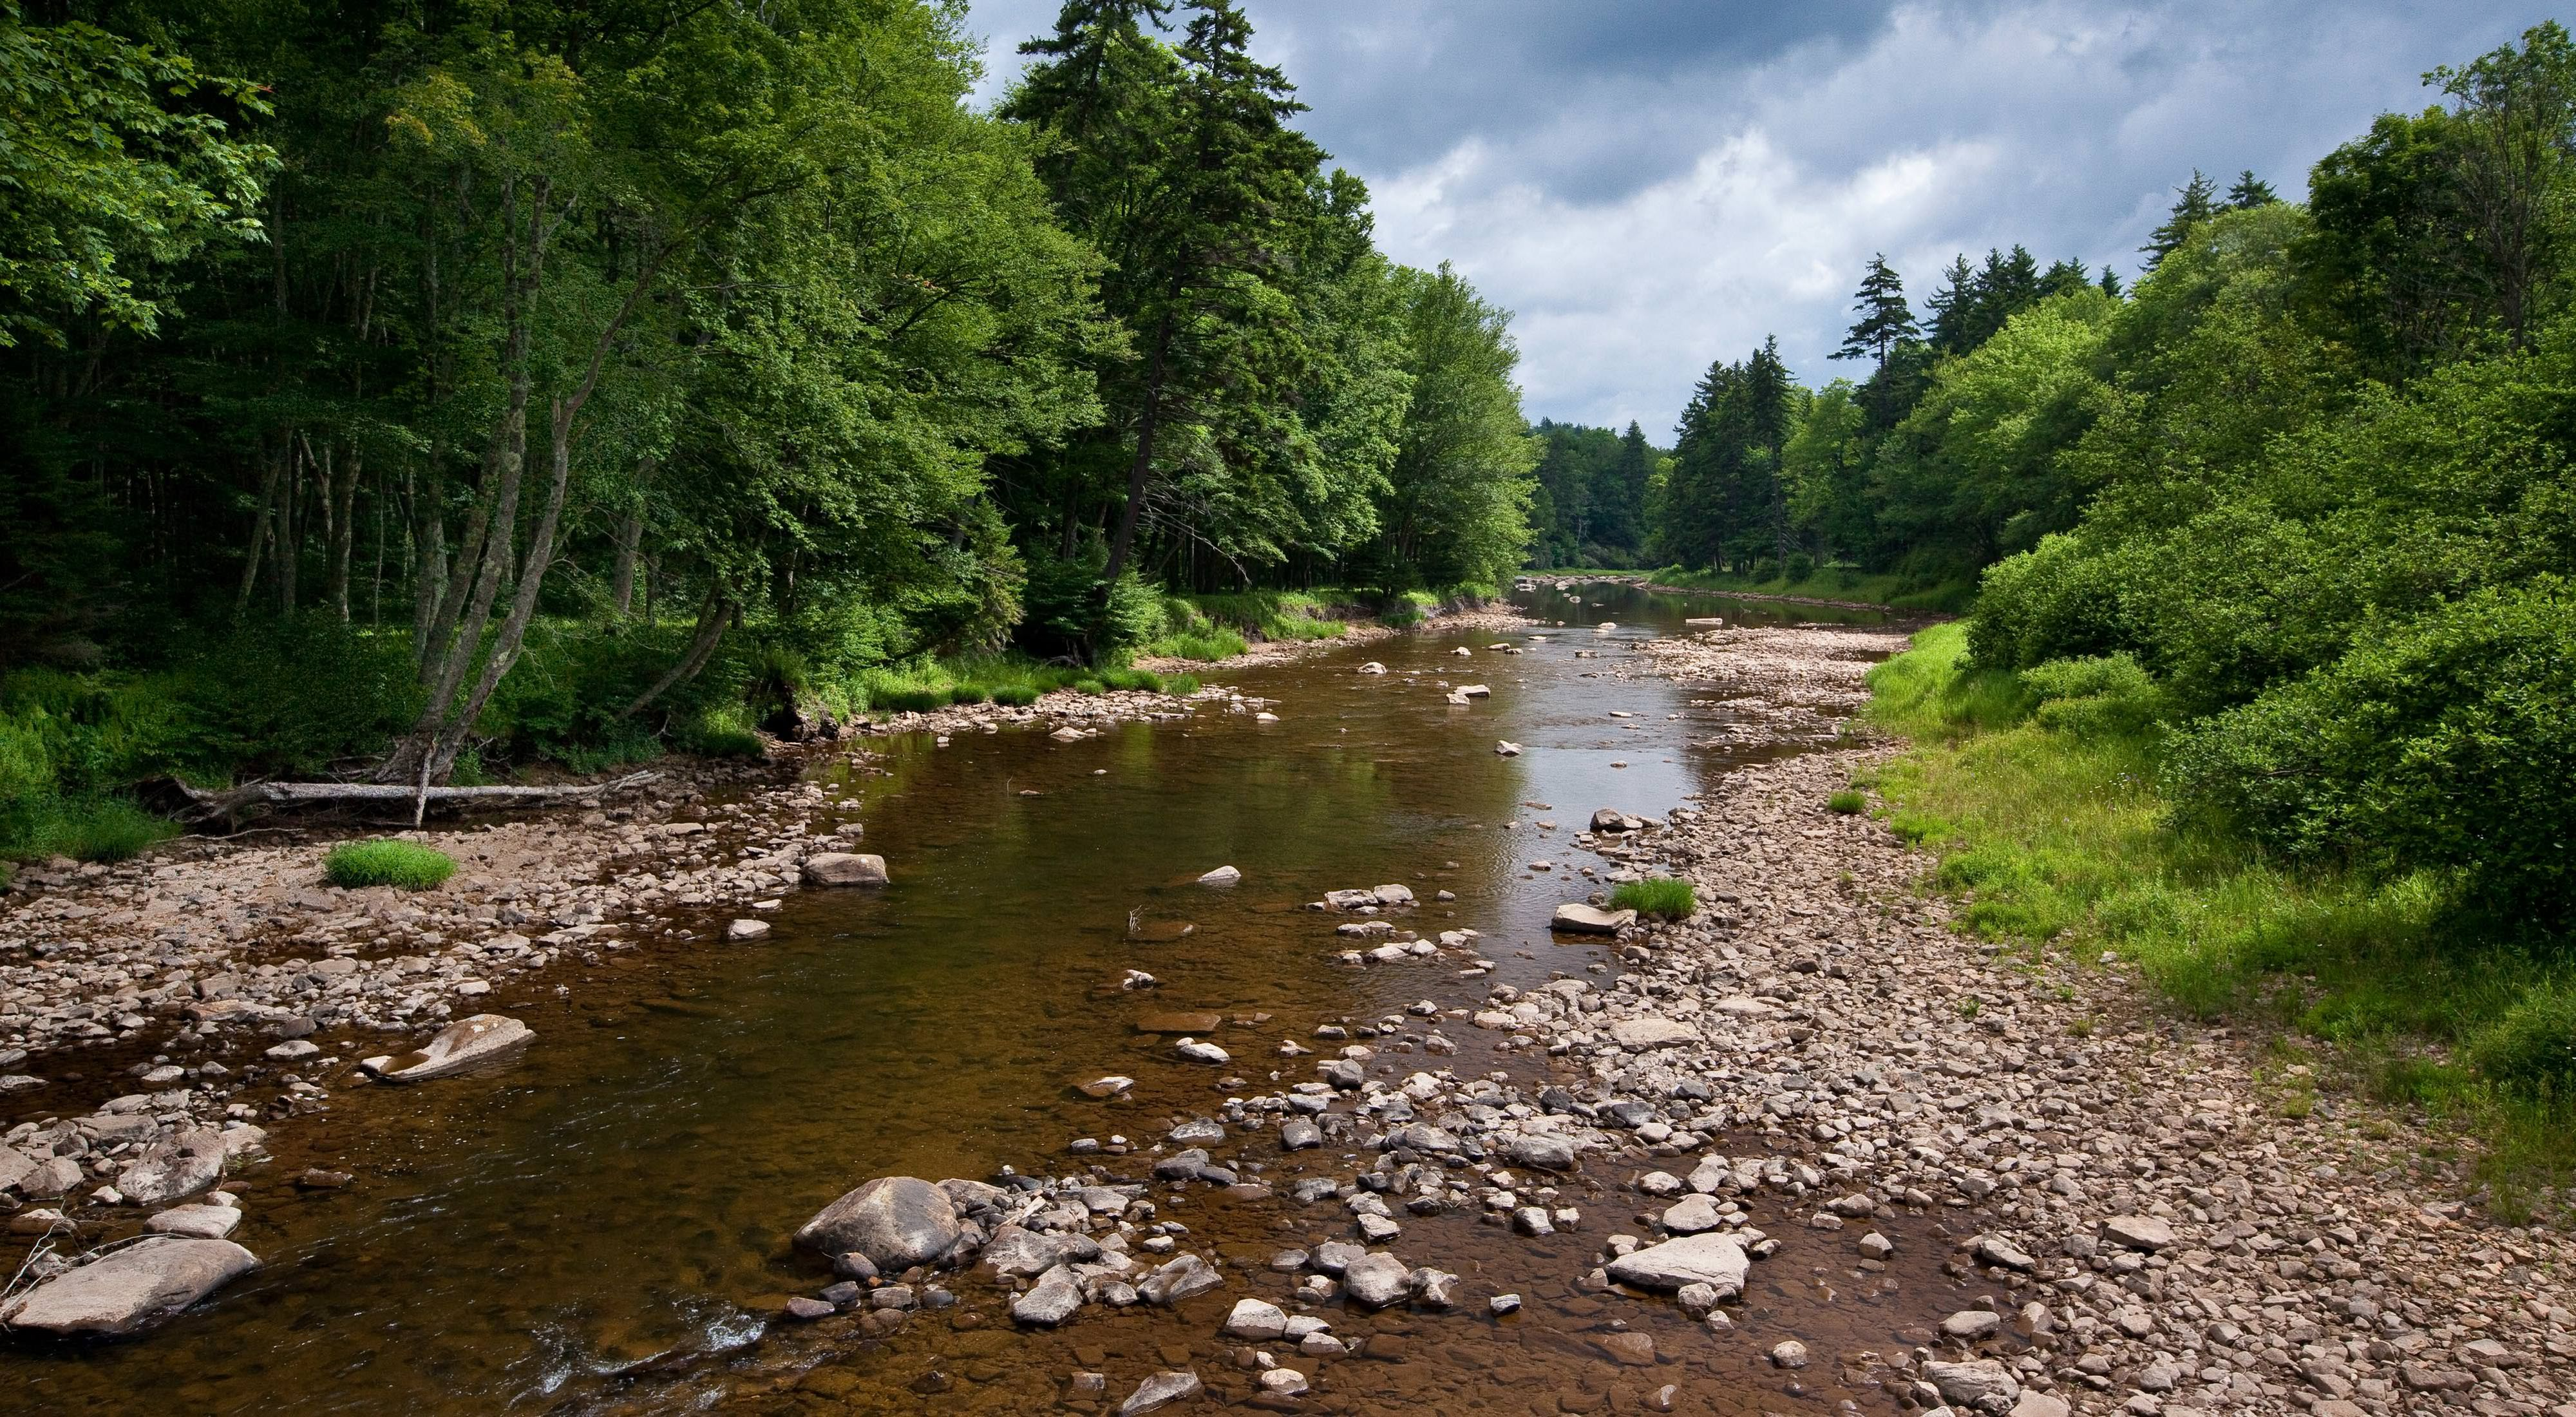 The Upper Shavers Fork Preserve is located along the banks of the Cheat River at the center of the 40-mile long high elevation watershed that is the heart WV's spruce forest.